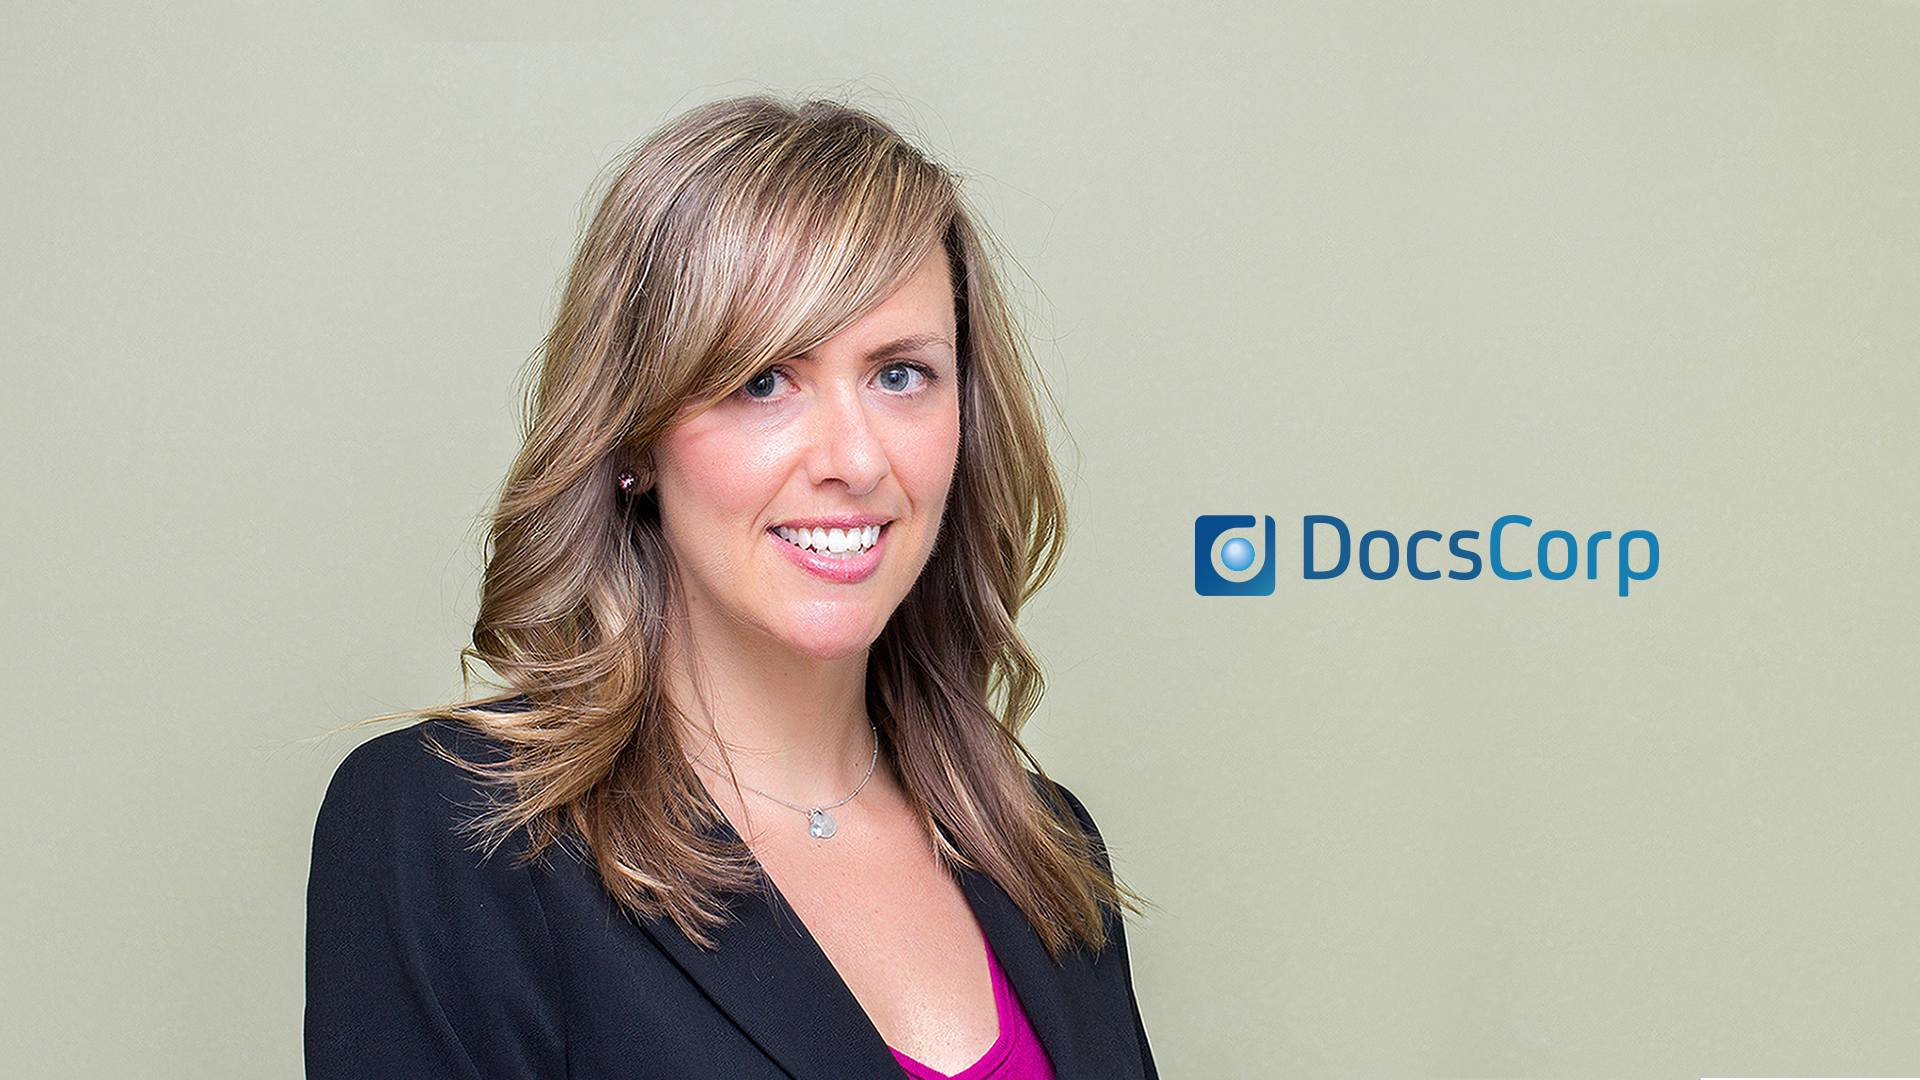 Maggie Smith is appointed DocsCorp Sales Director for Central and Southern states